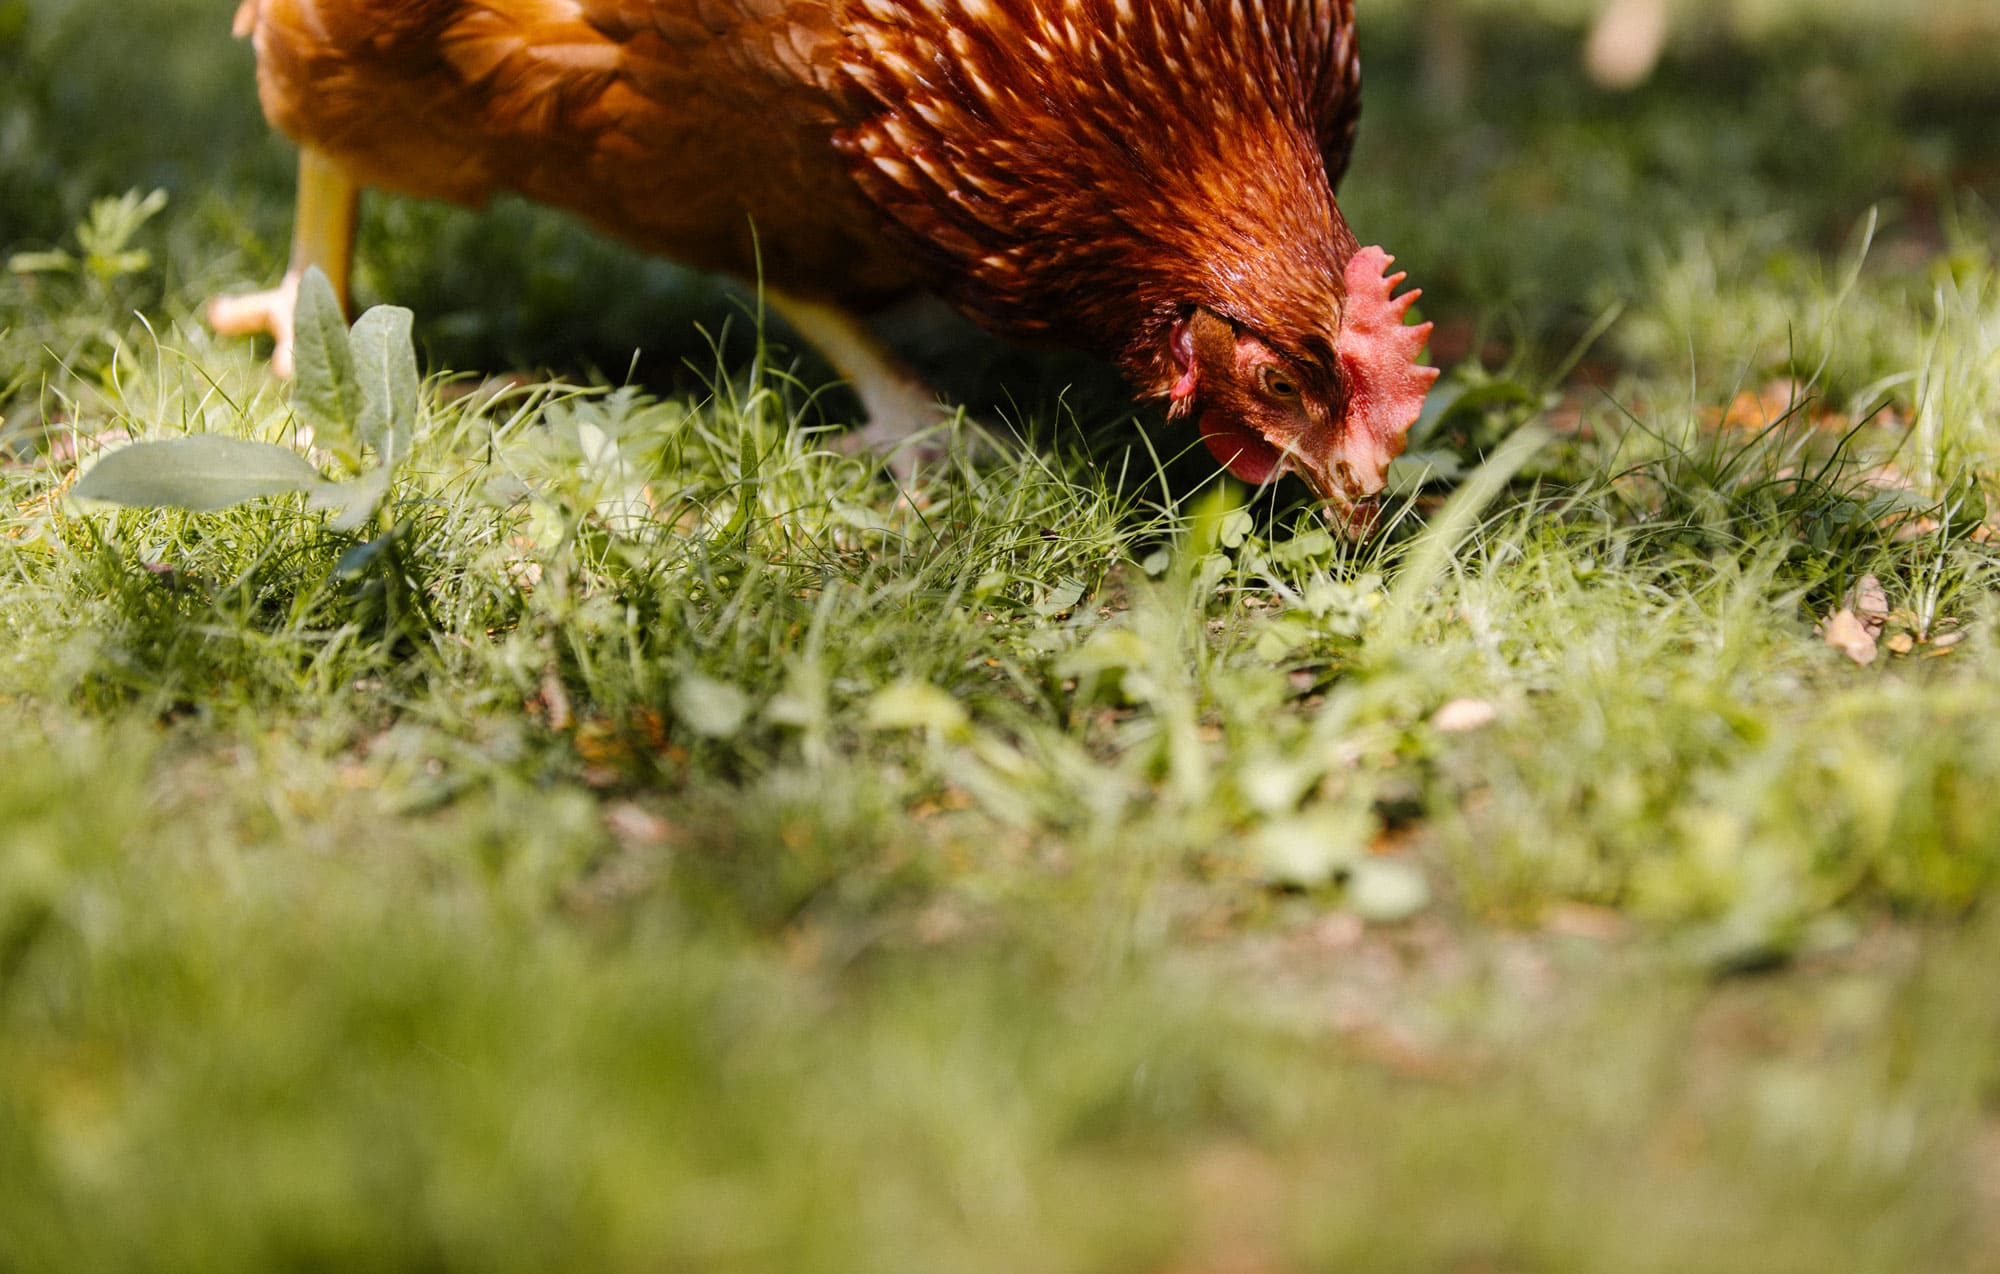 Chicken eating in a grassy field.